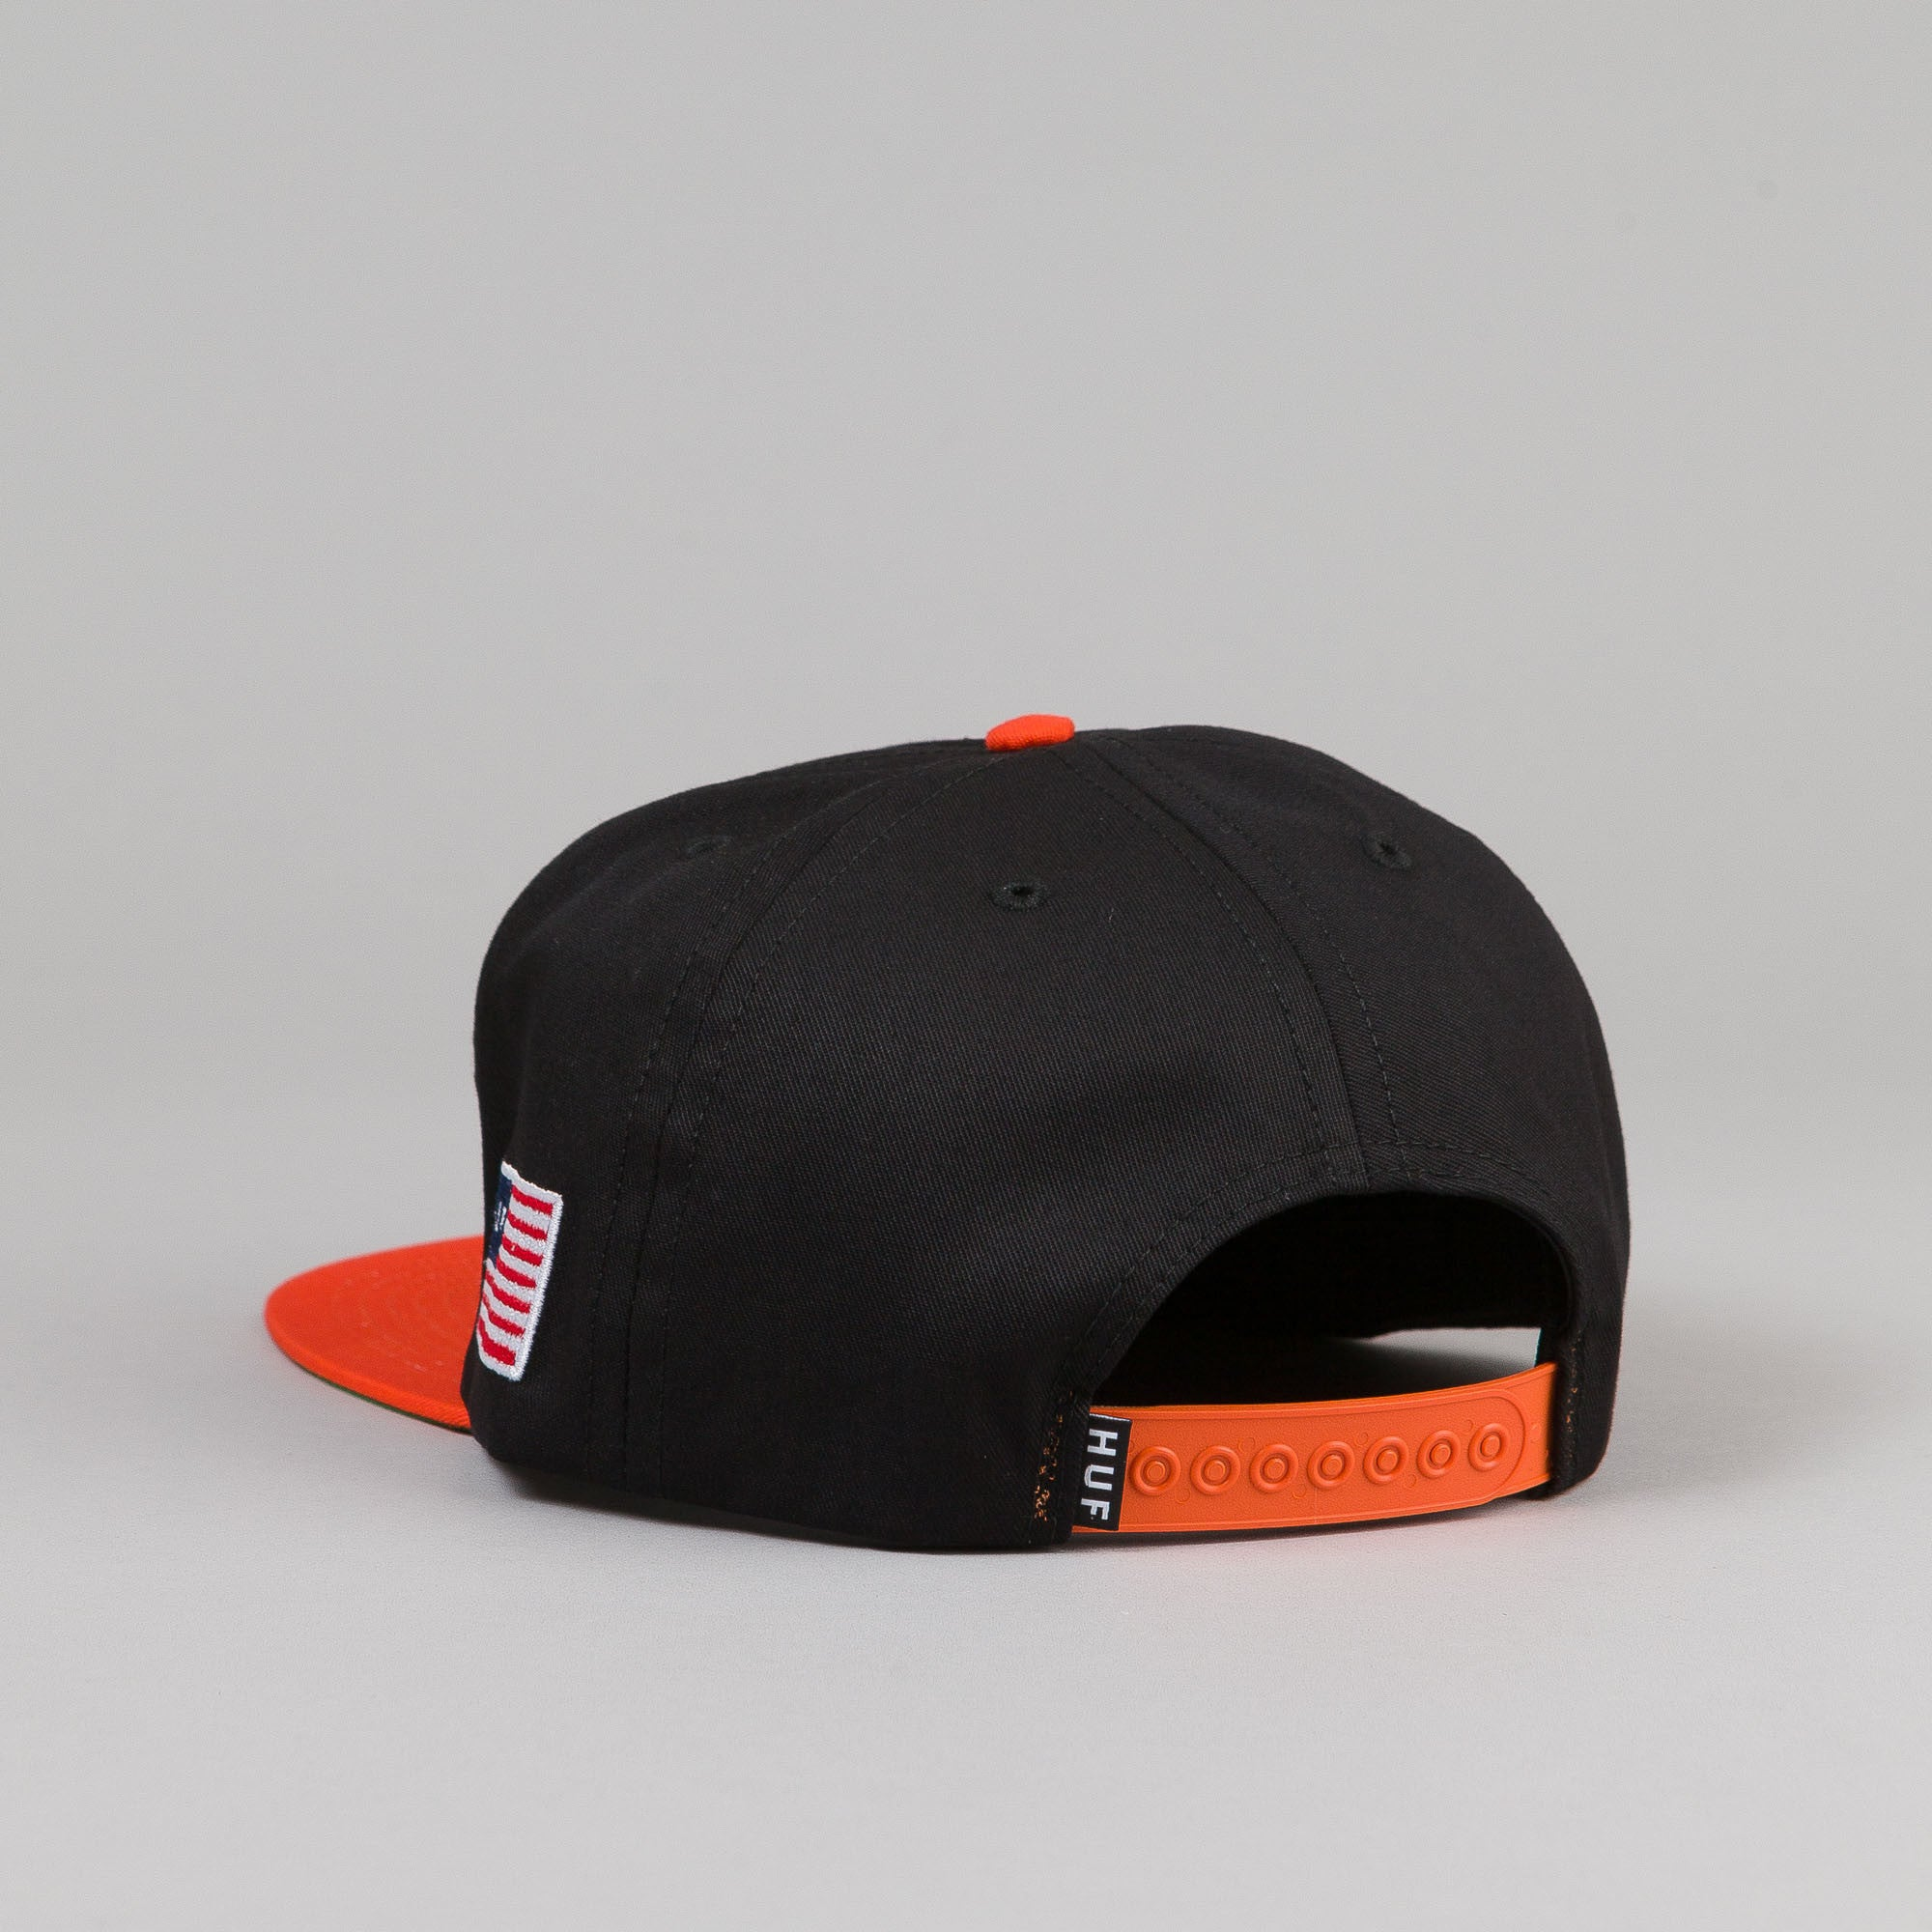 HUF Classic H Snapback Cap - Black / Orange